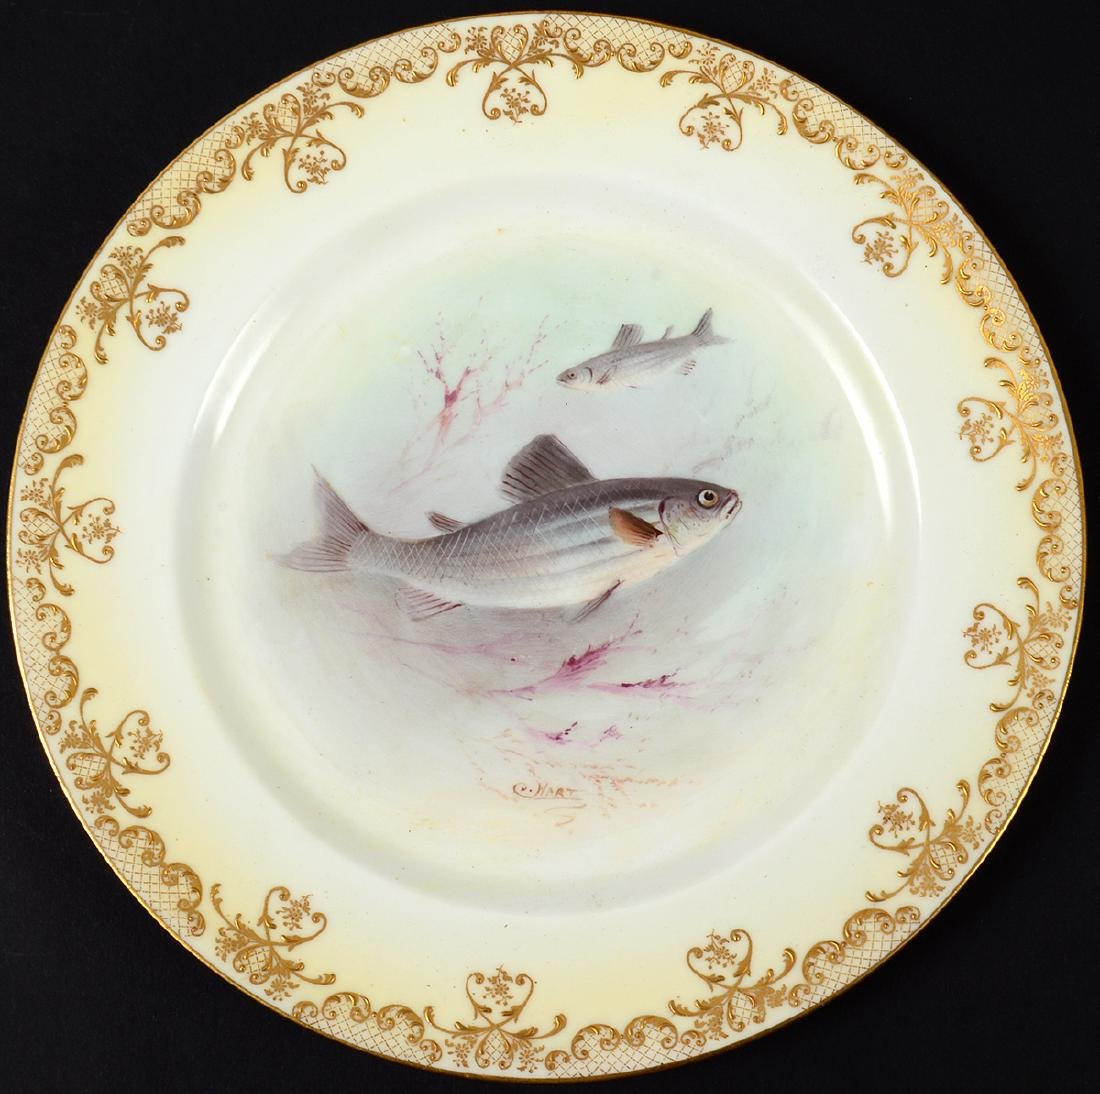 SET OF TEN ROYAL DOULTON PORCELAIN FISH PLATES - 10